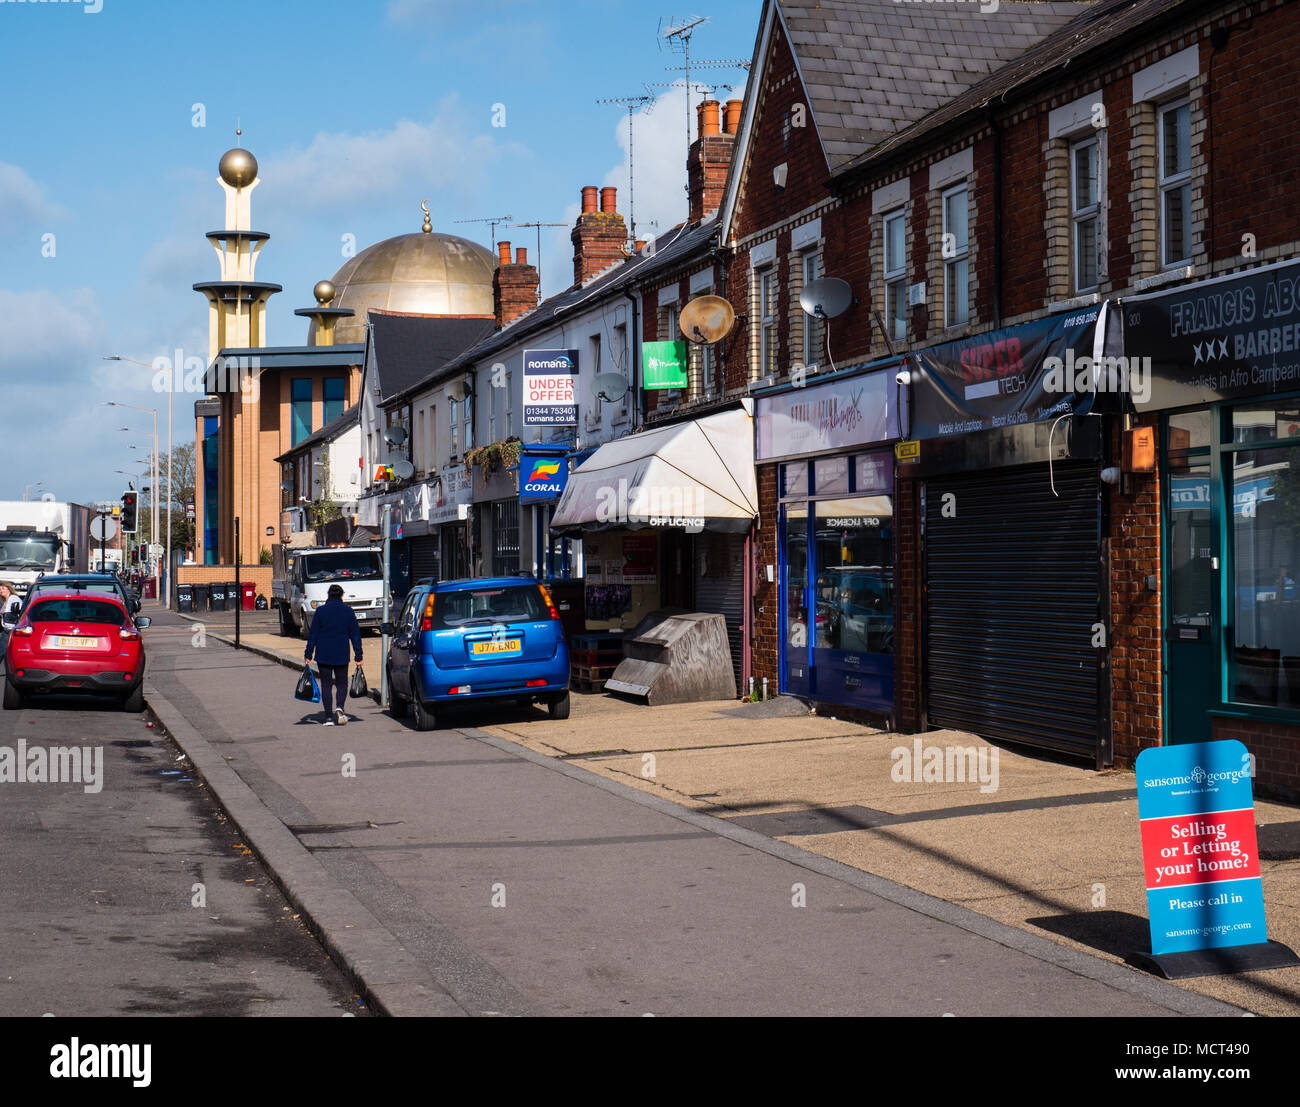 Mosk, and betting shop,  Tilehurst, Reading, Berkshire, Reading, UK, GB. - Stock Image